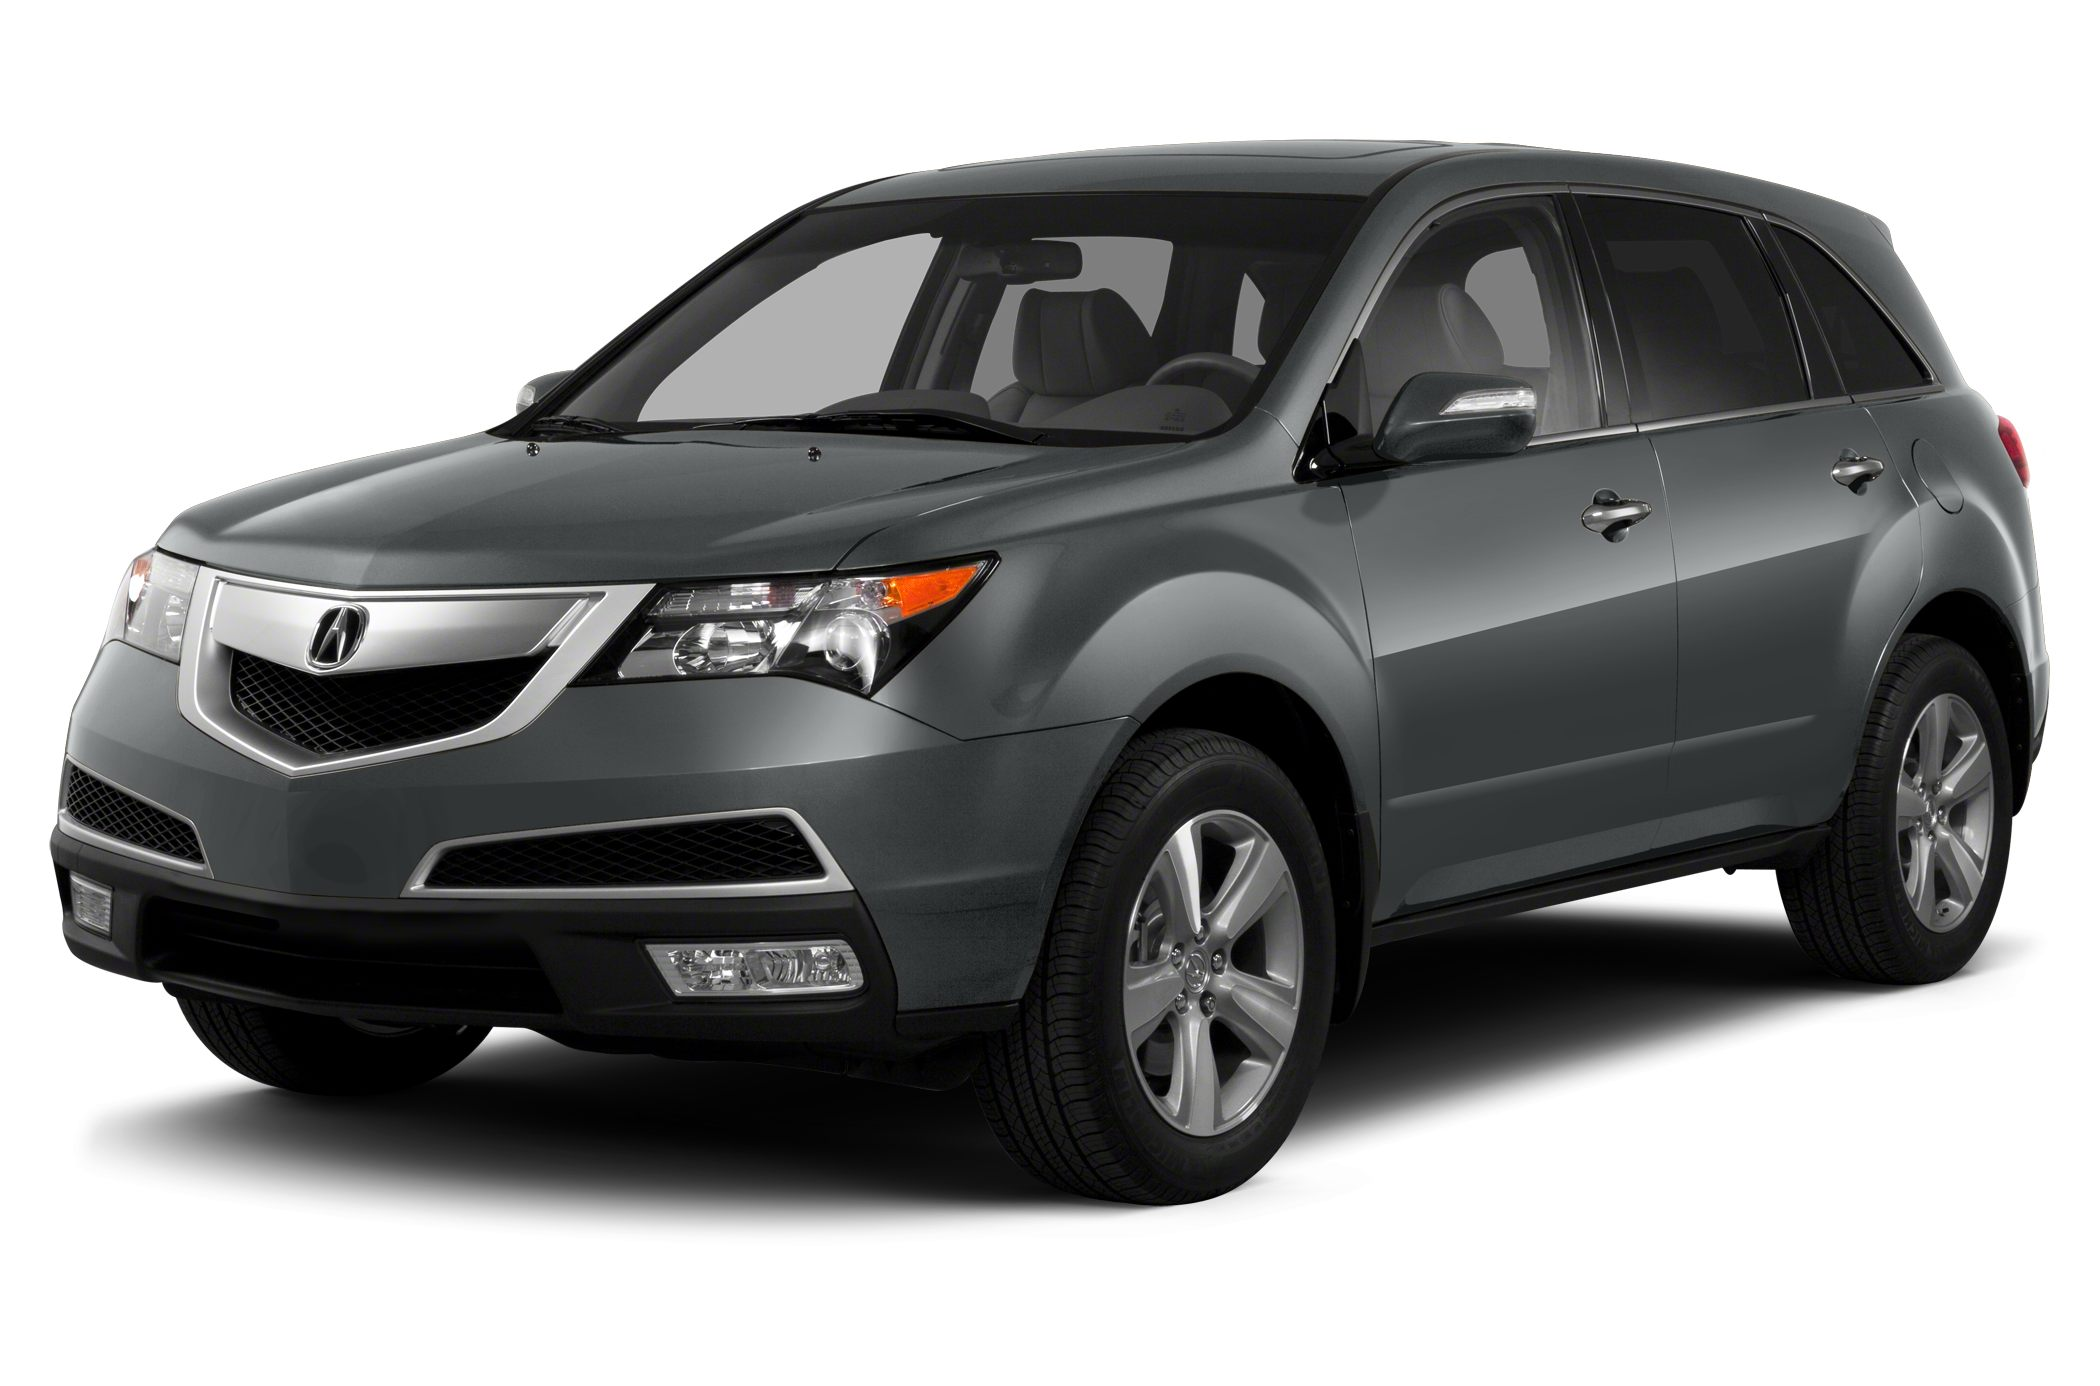 2013 Acura MDX 37 Technology Clean Carfax - One Owner - Technology Package - Navigation - Backup